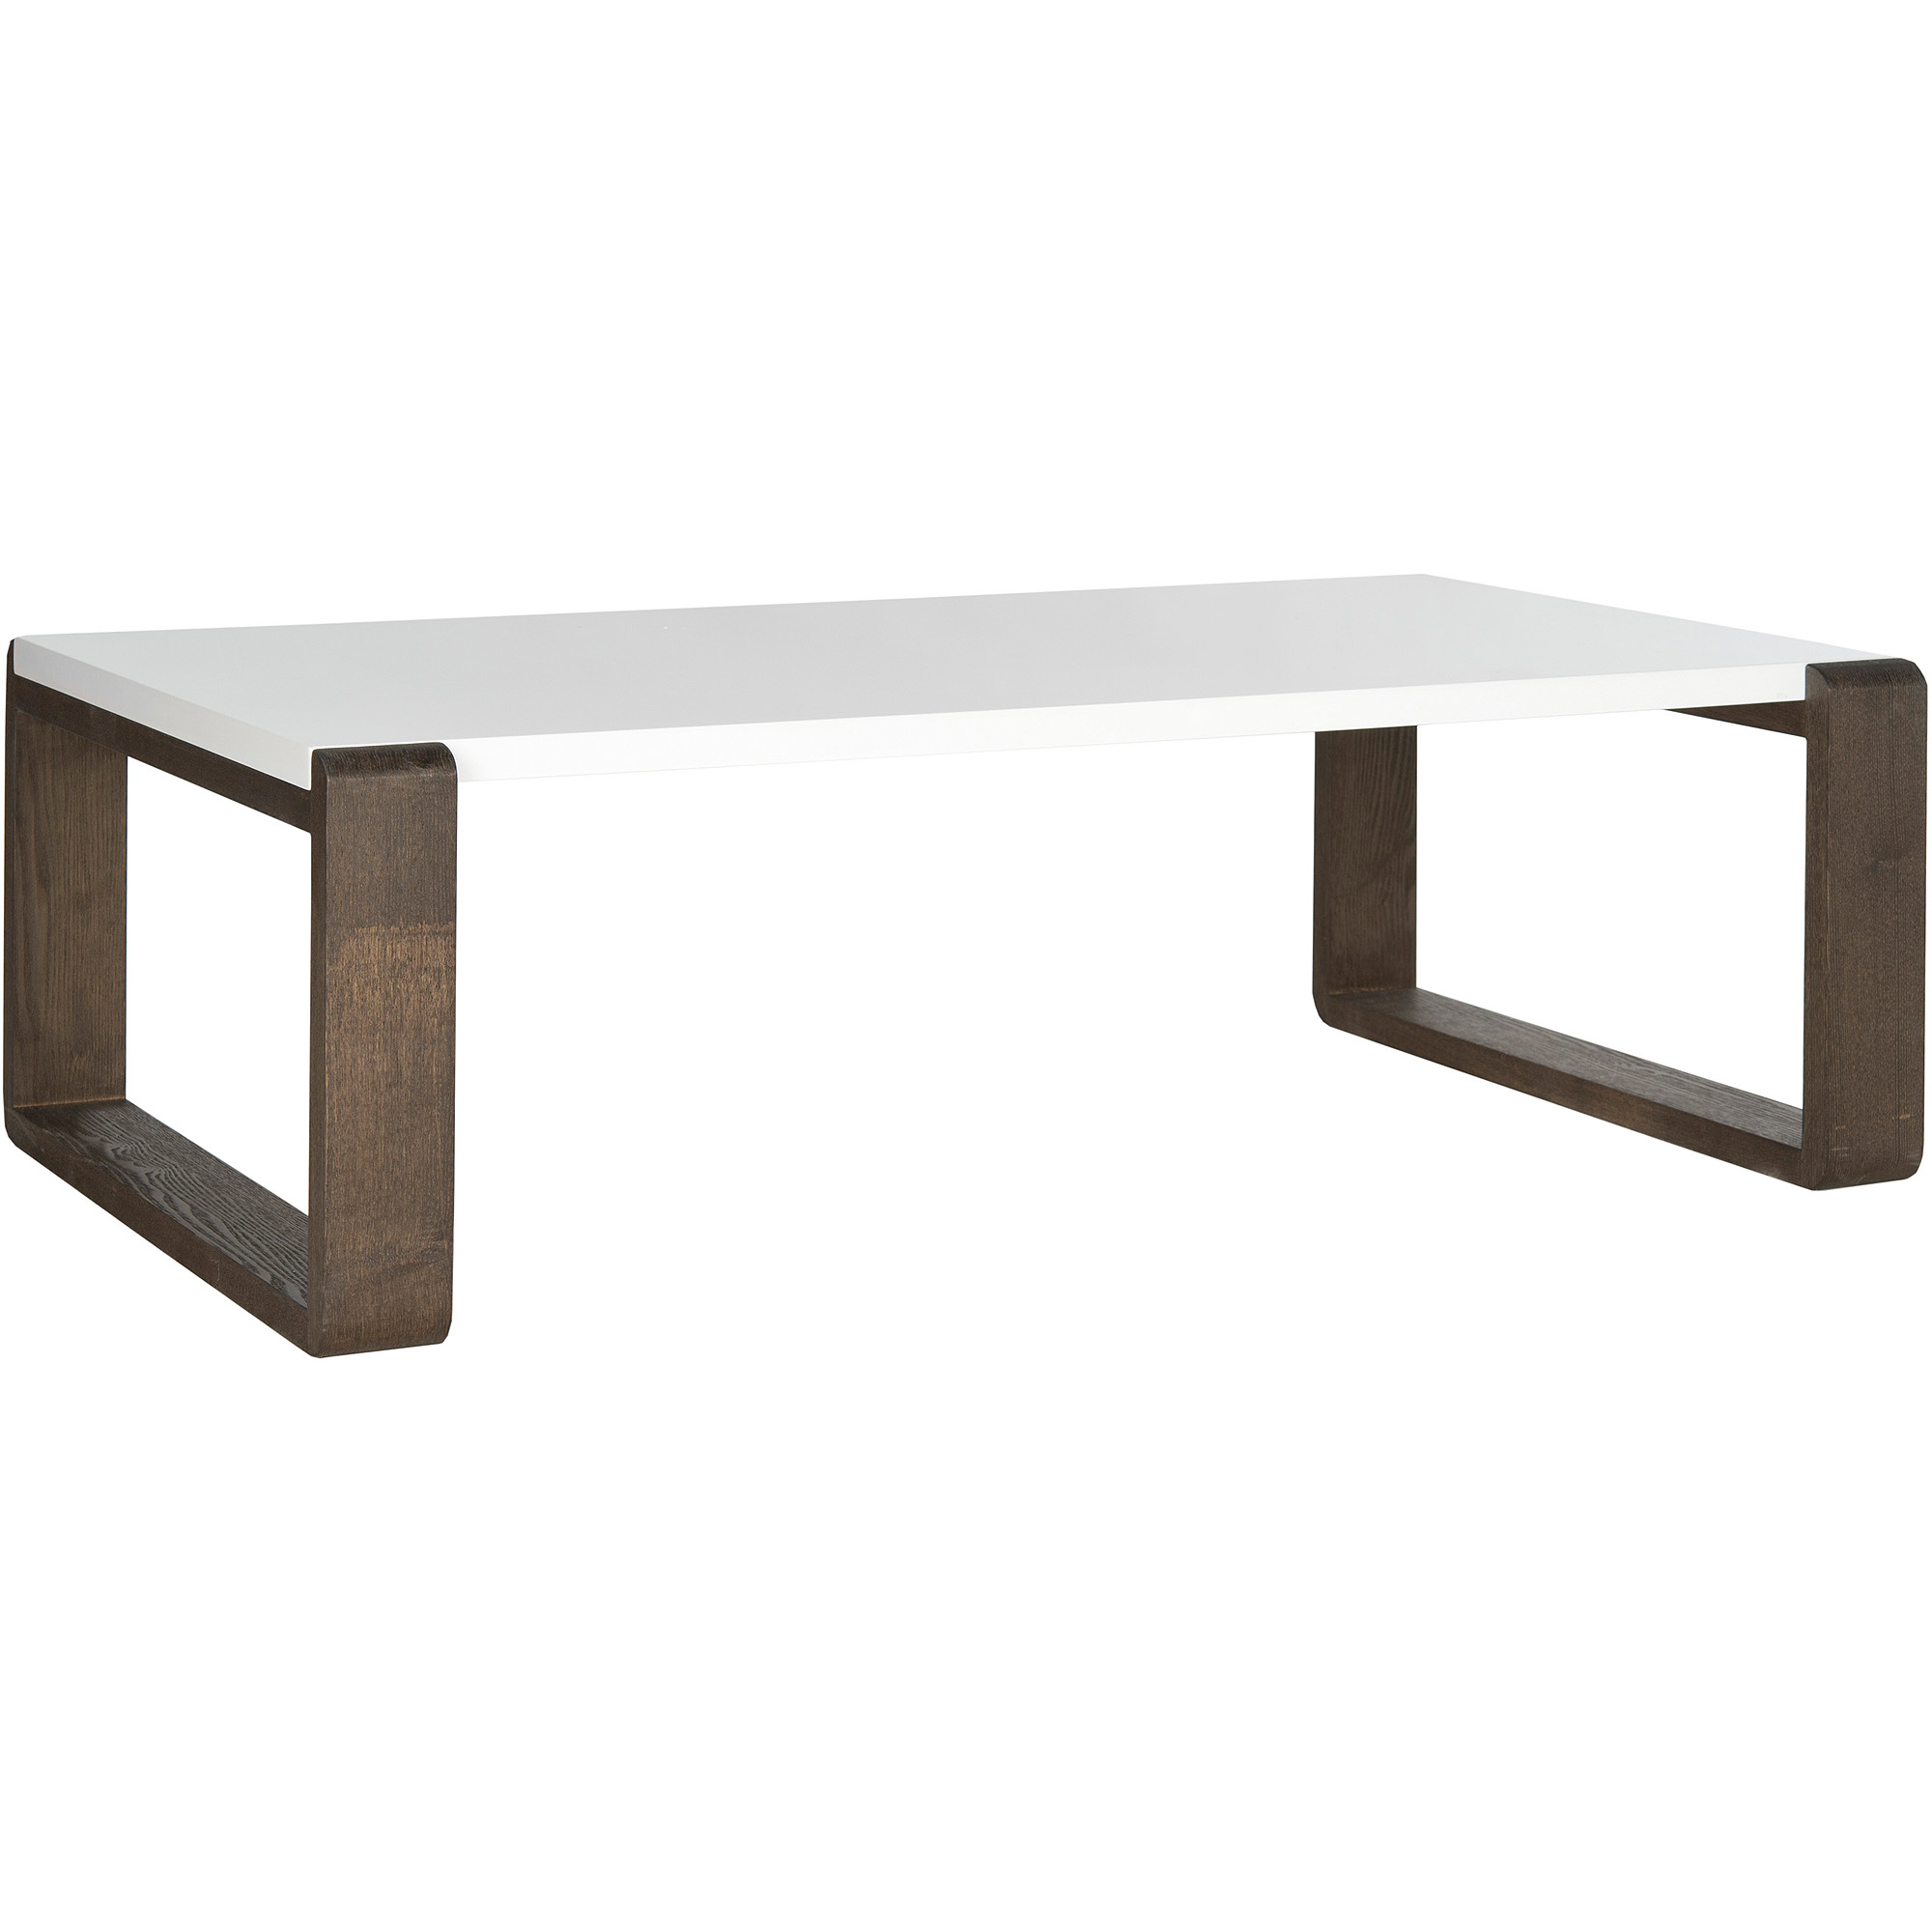 Safavieh Bartholomew Lacquer Coffee Table, White and Dark Brown by Safavieh